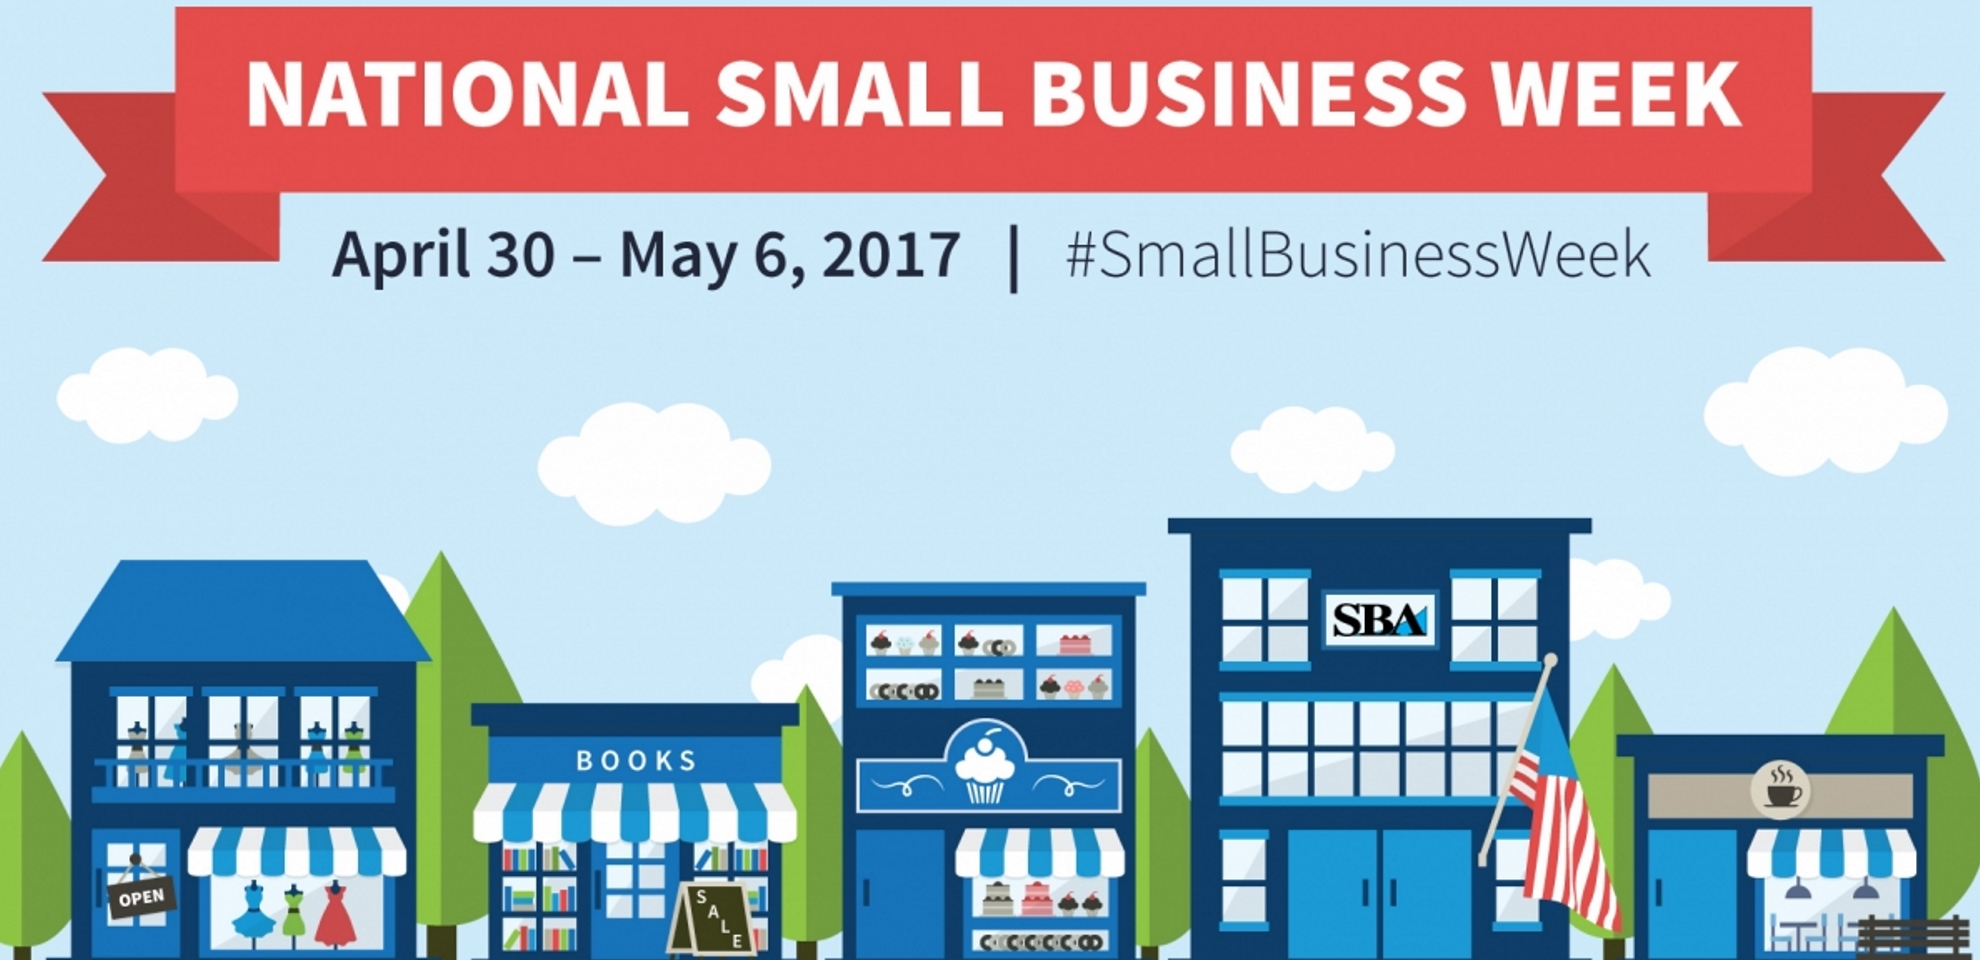 Share Your Story & Hone Your Skills by Participating in National Small Business Week Events